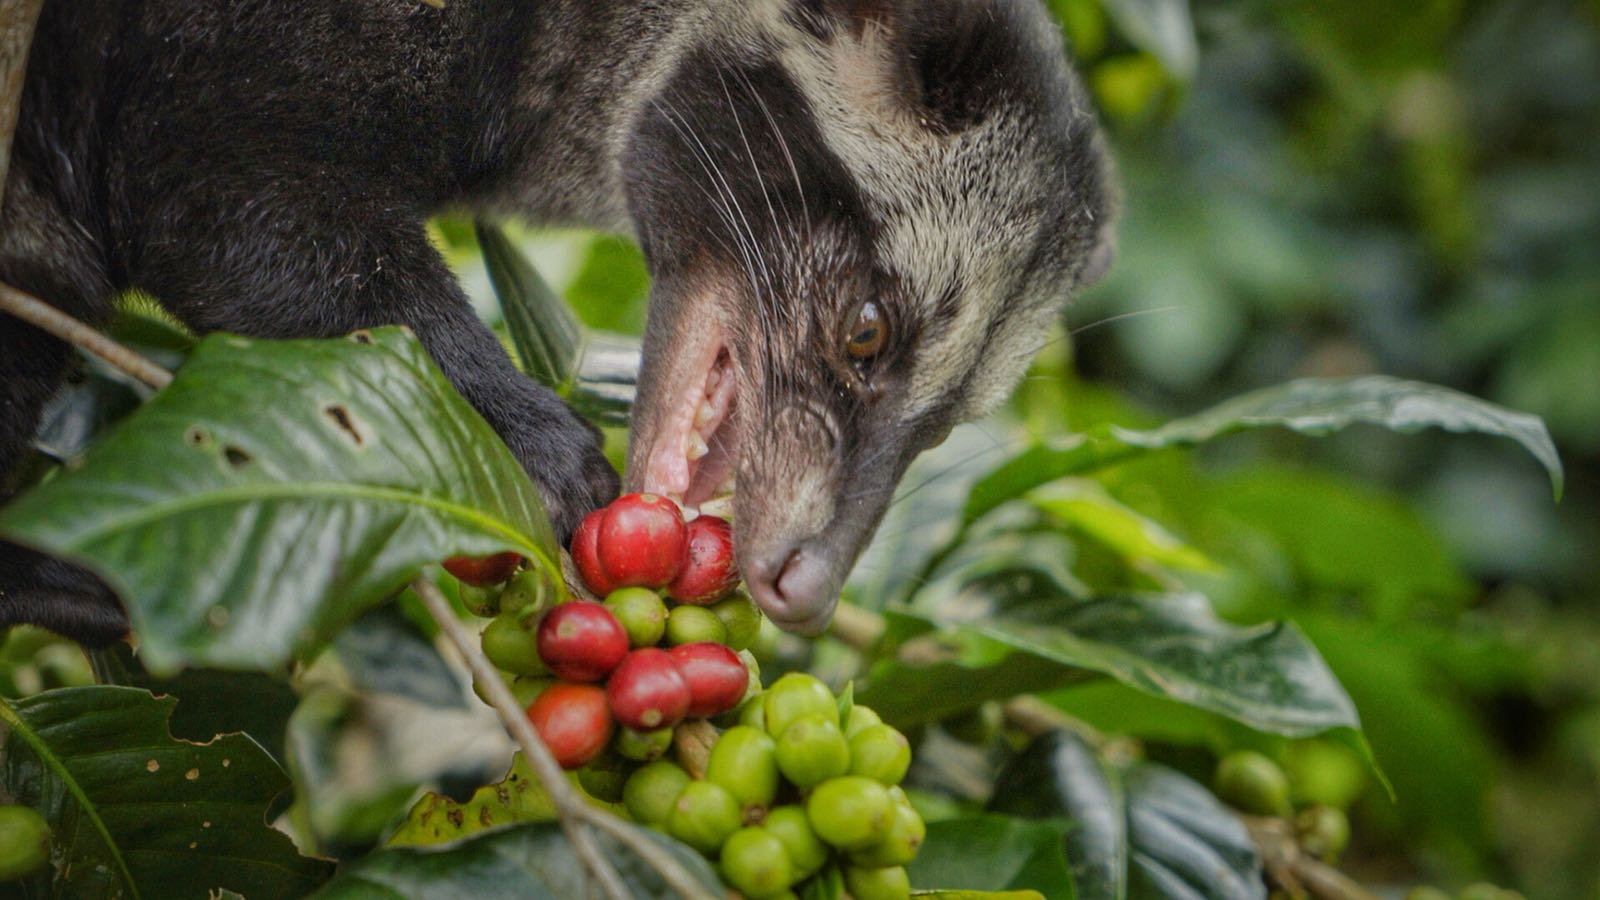 A luwak cat goes in for the ripest coffee (kopi) cherry.